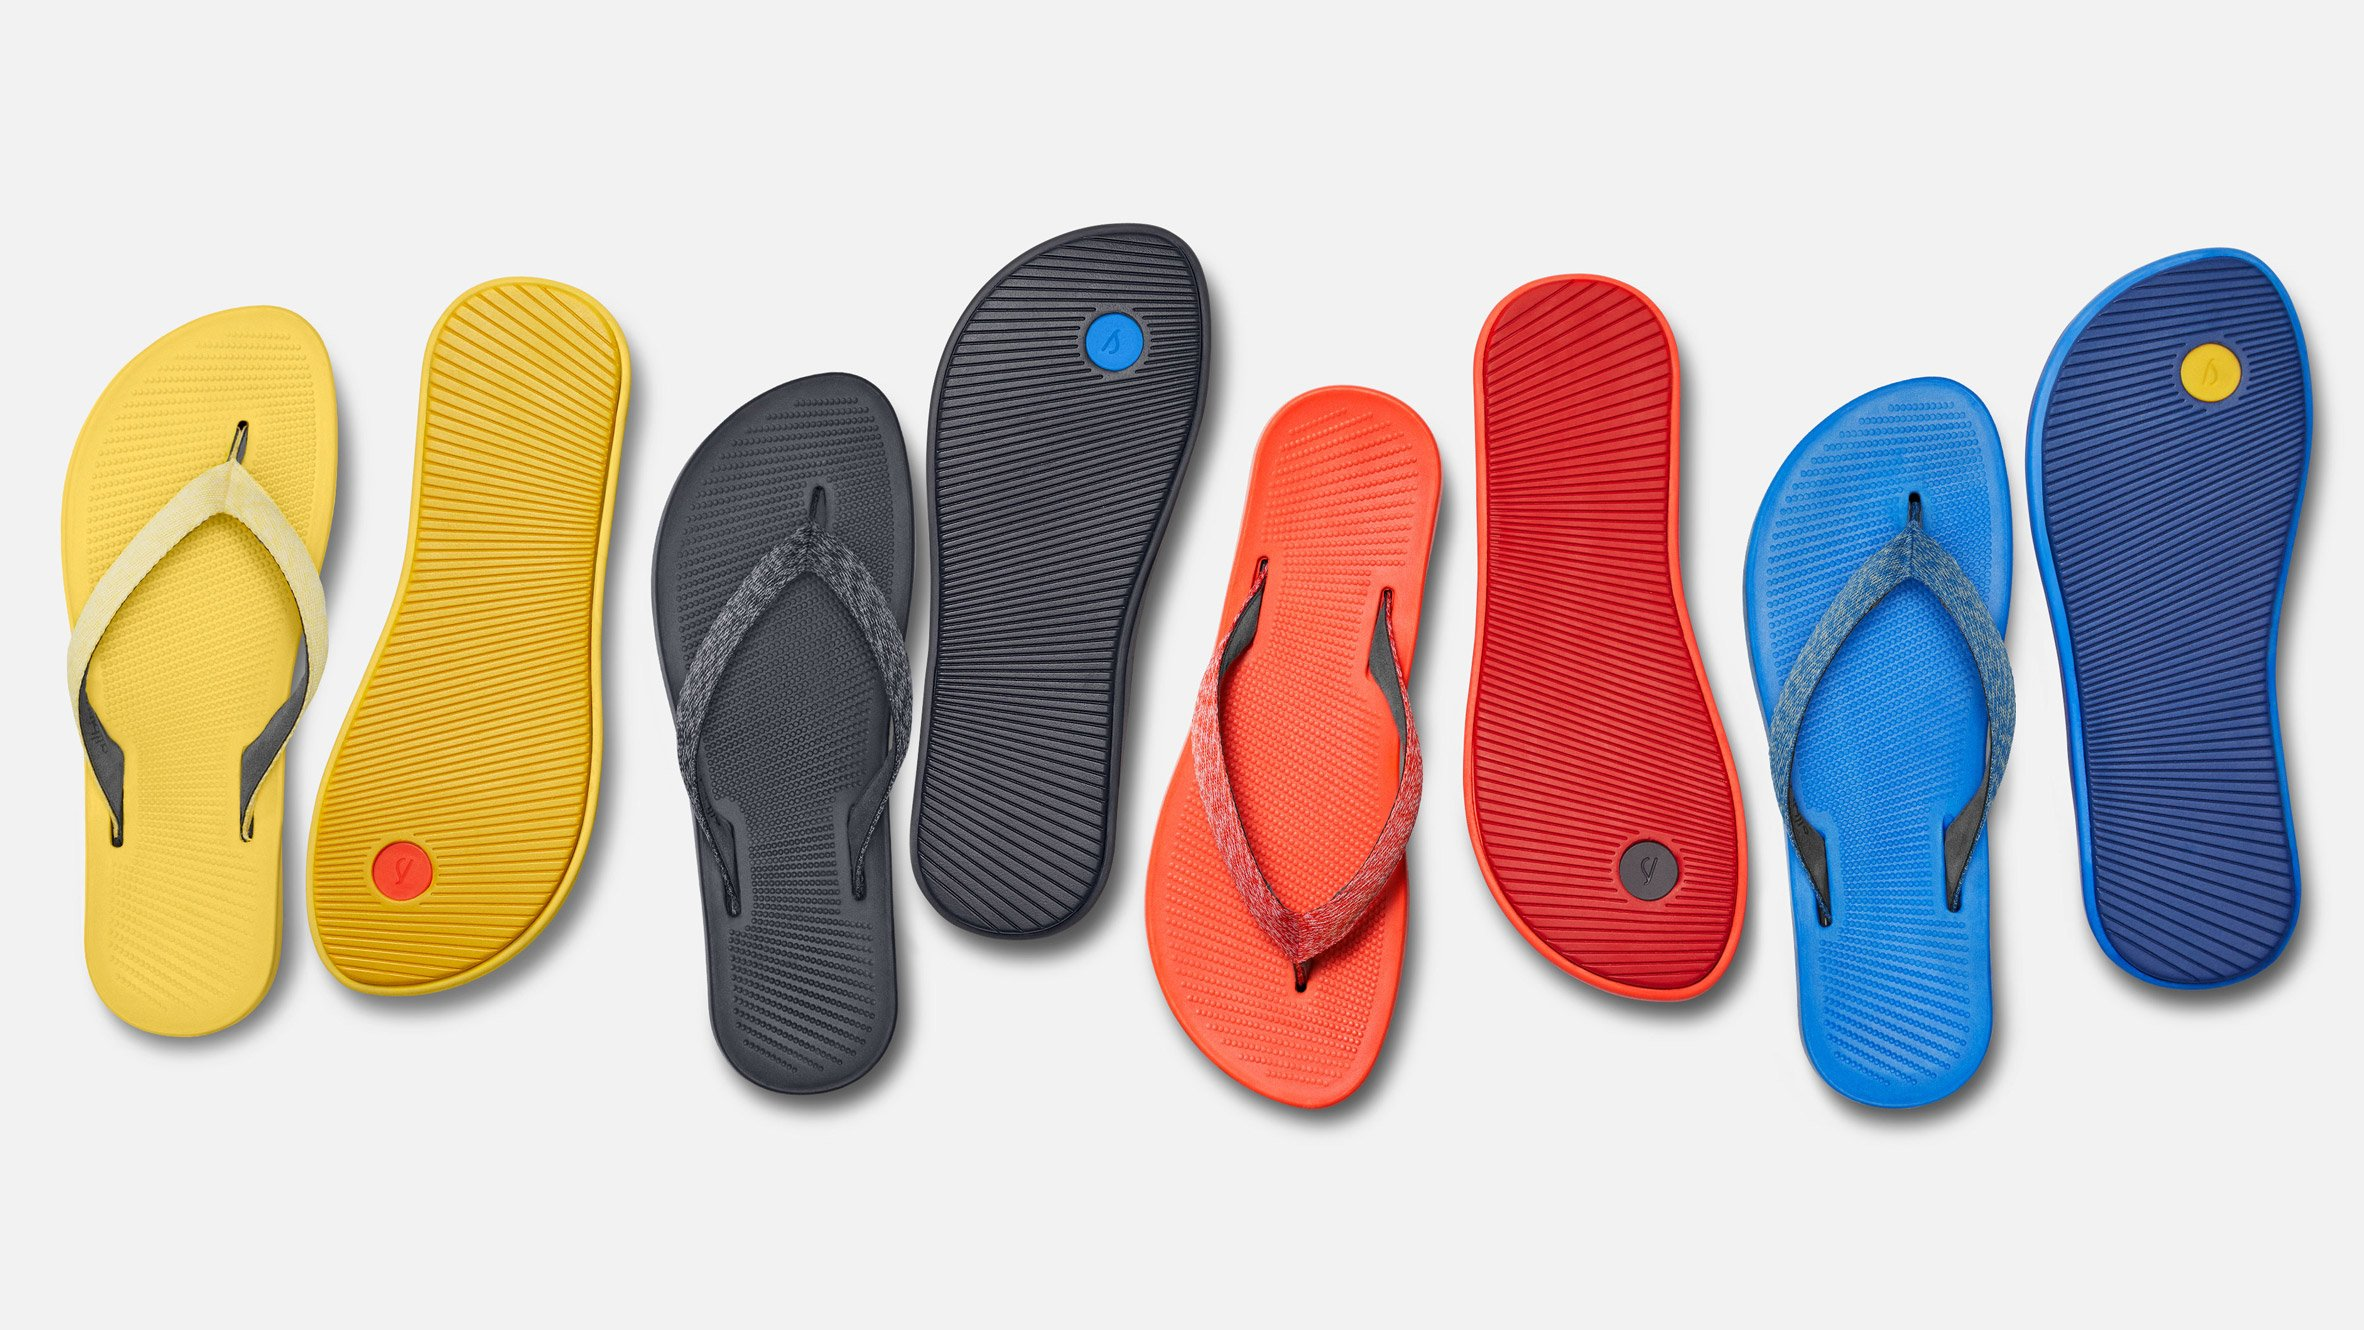 a7c78bf564d51a Flip flops with sugar-cane soles released by eco shoe brand Allbirds